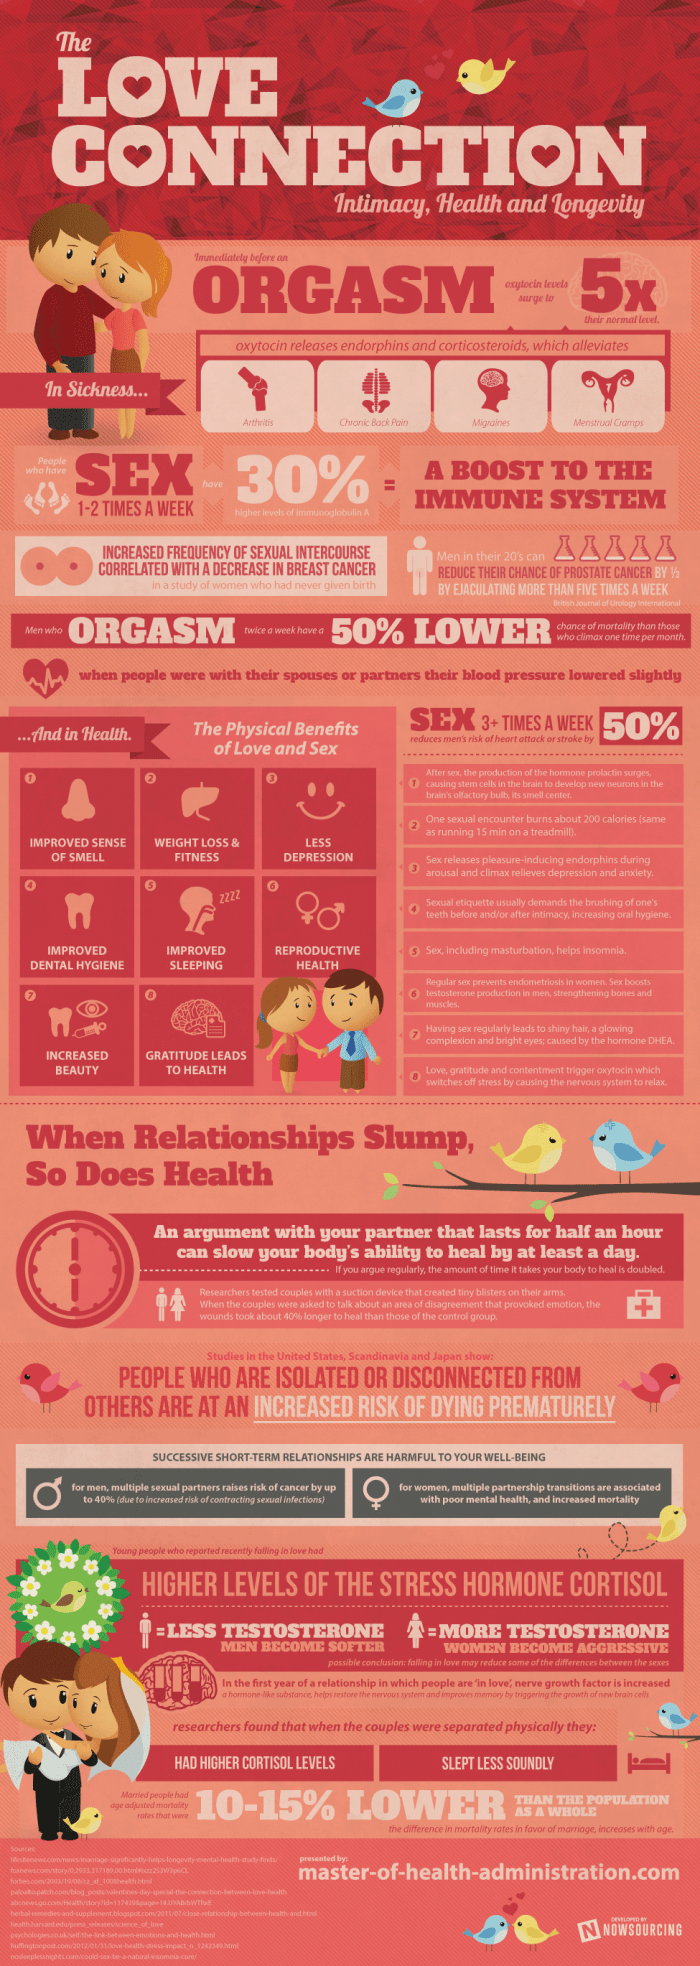 infographic describes Intimacy and sex impact on health